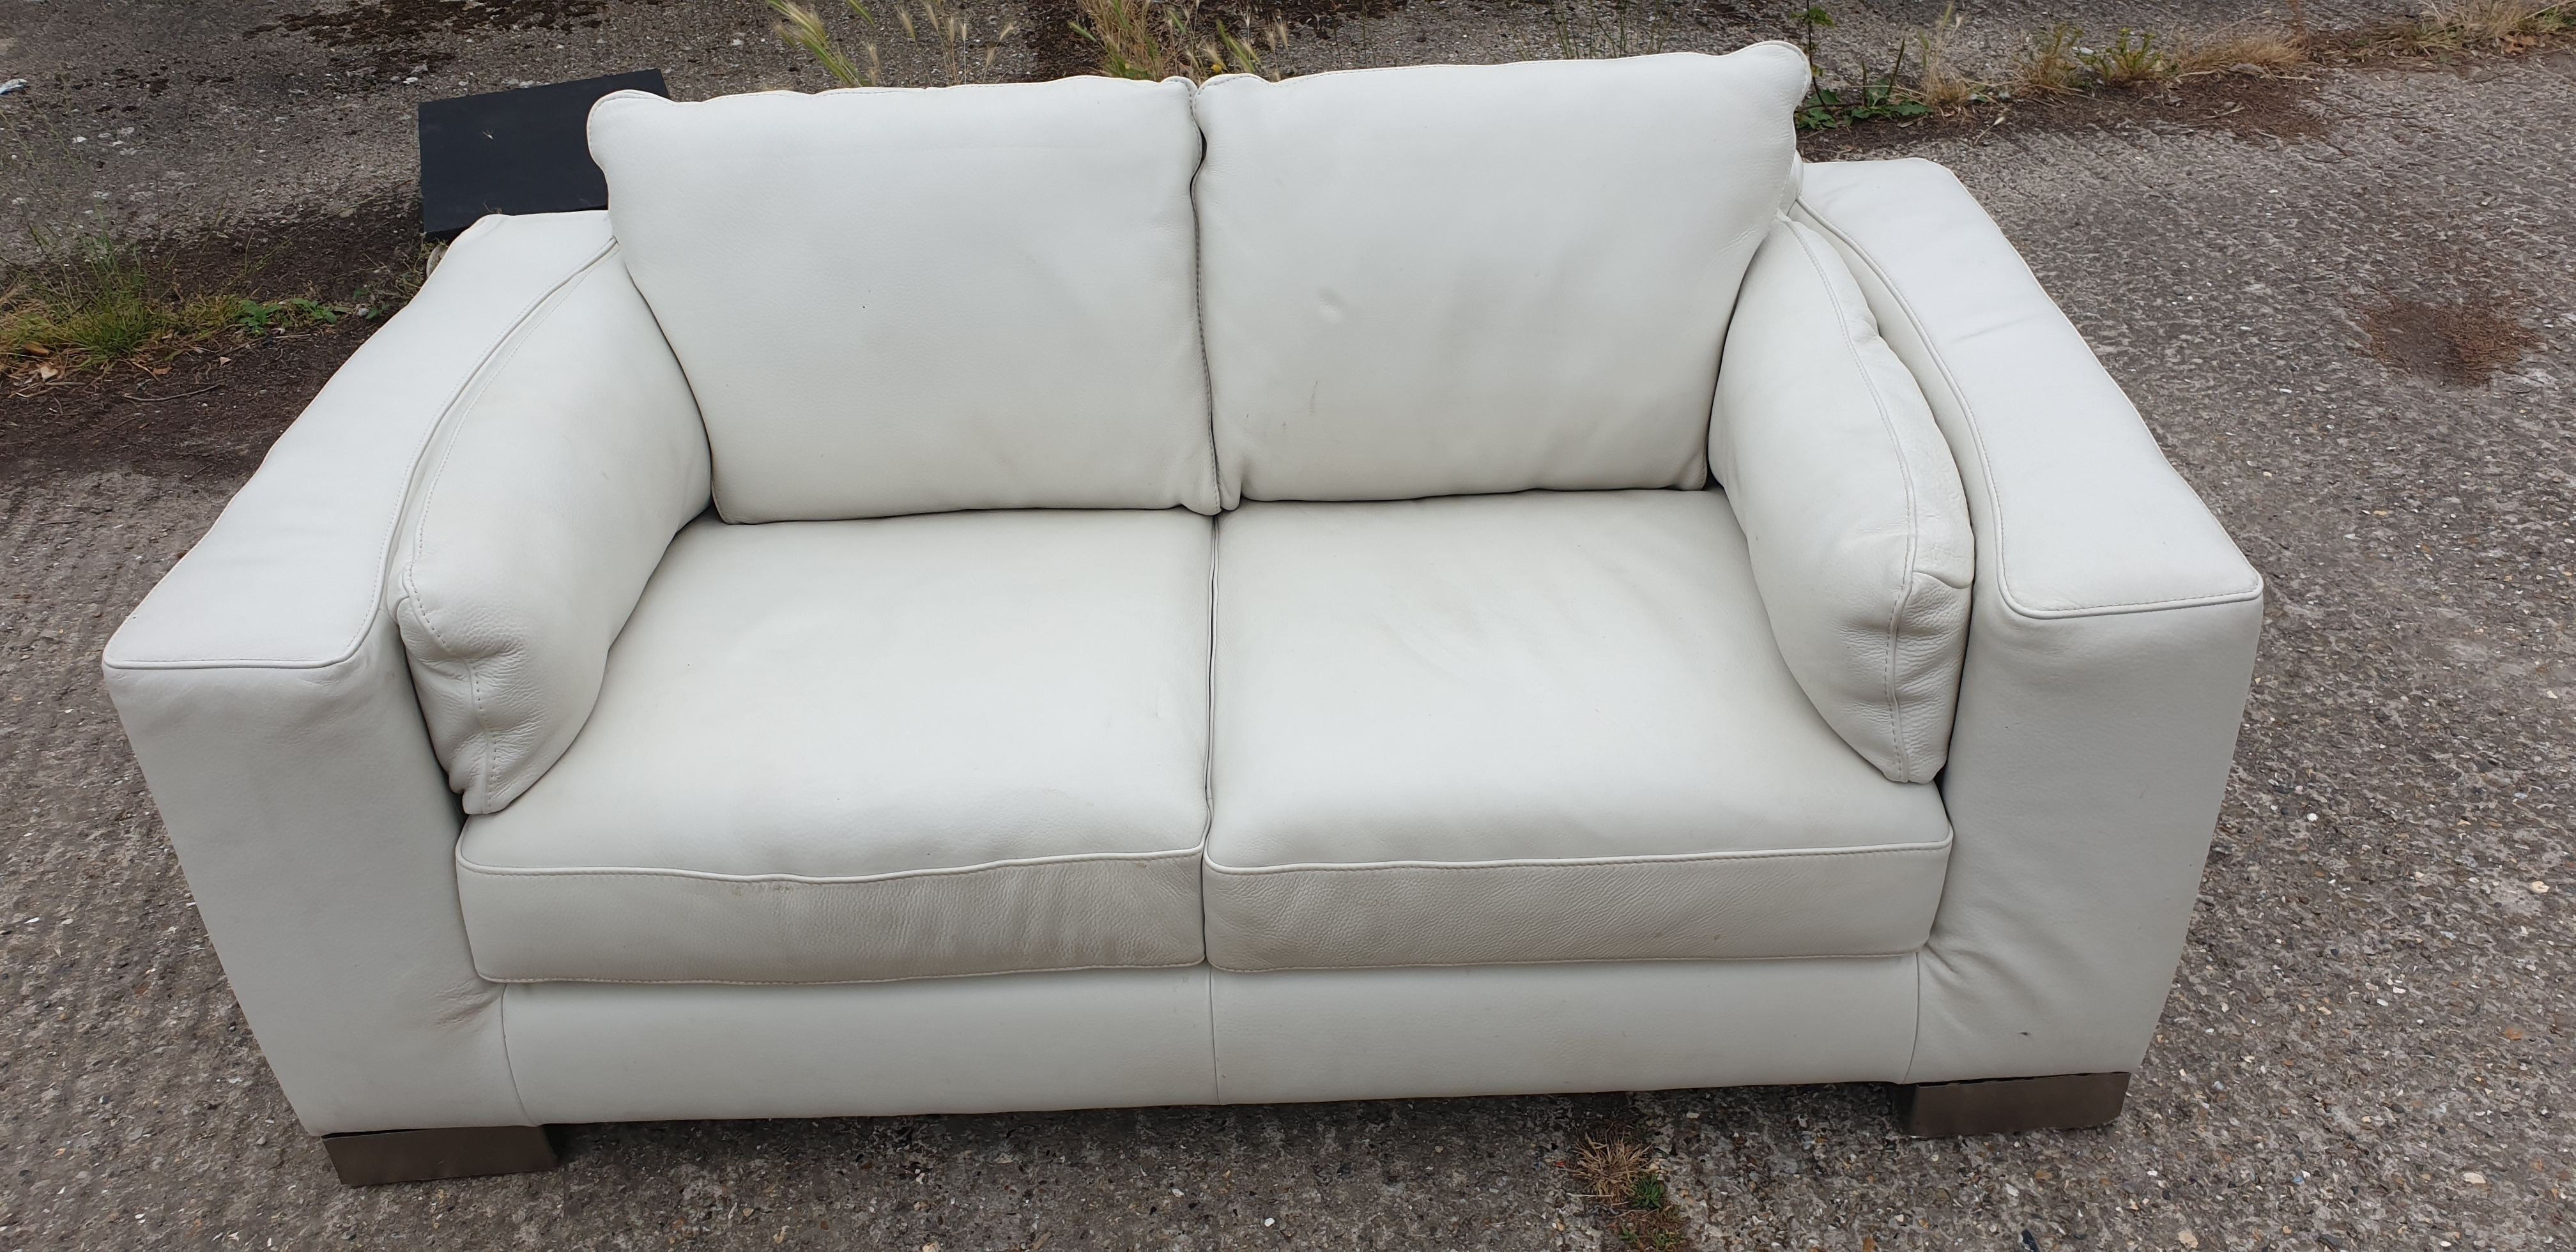 2 Seater Light Cream Leather Sofa